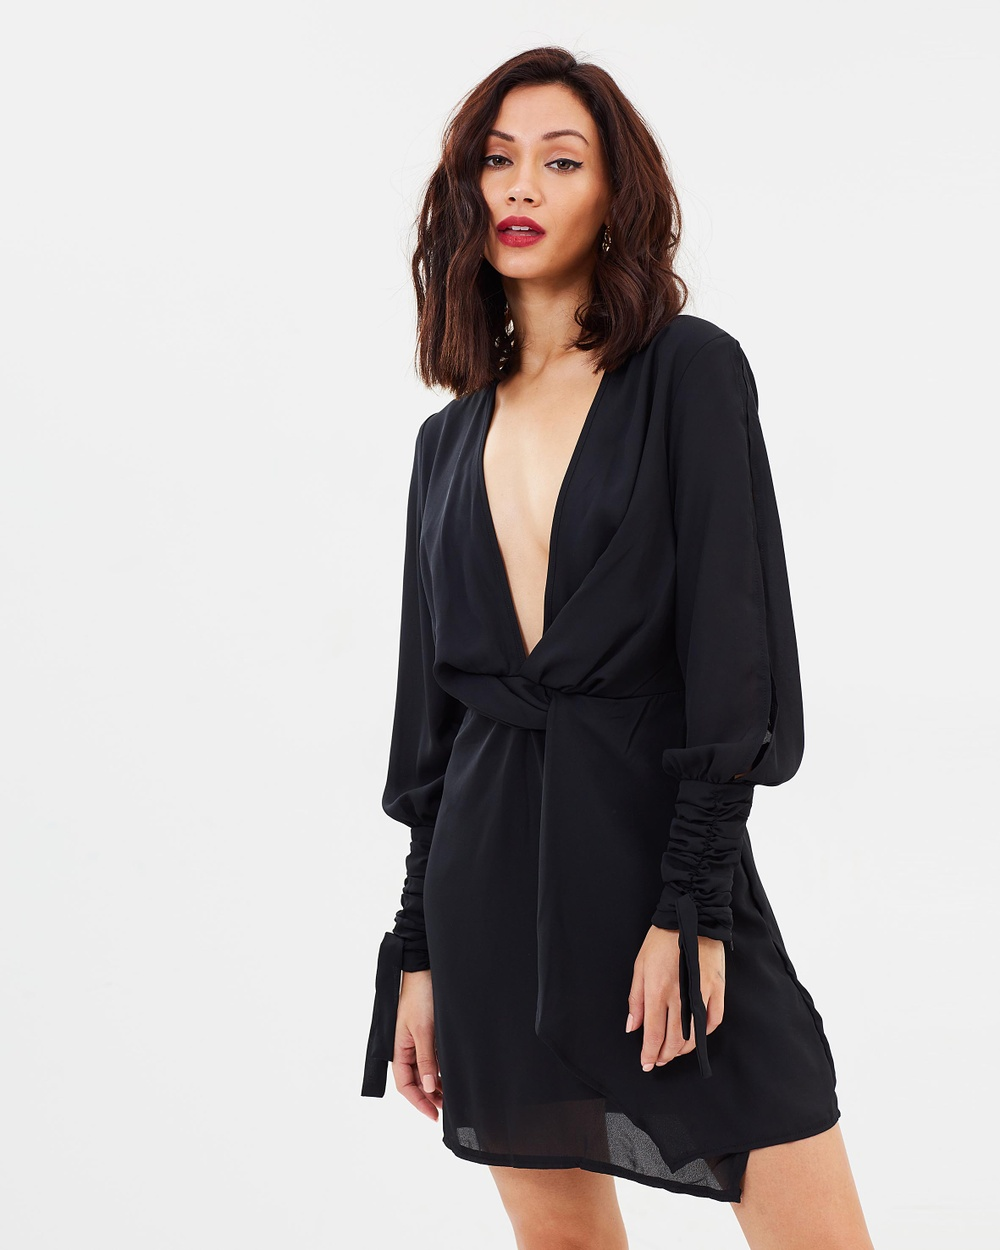 Missguided Split Sleeve Knot Front Wrap Dress Dresses Black Split Sleeve Knot Front Wrap Dress